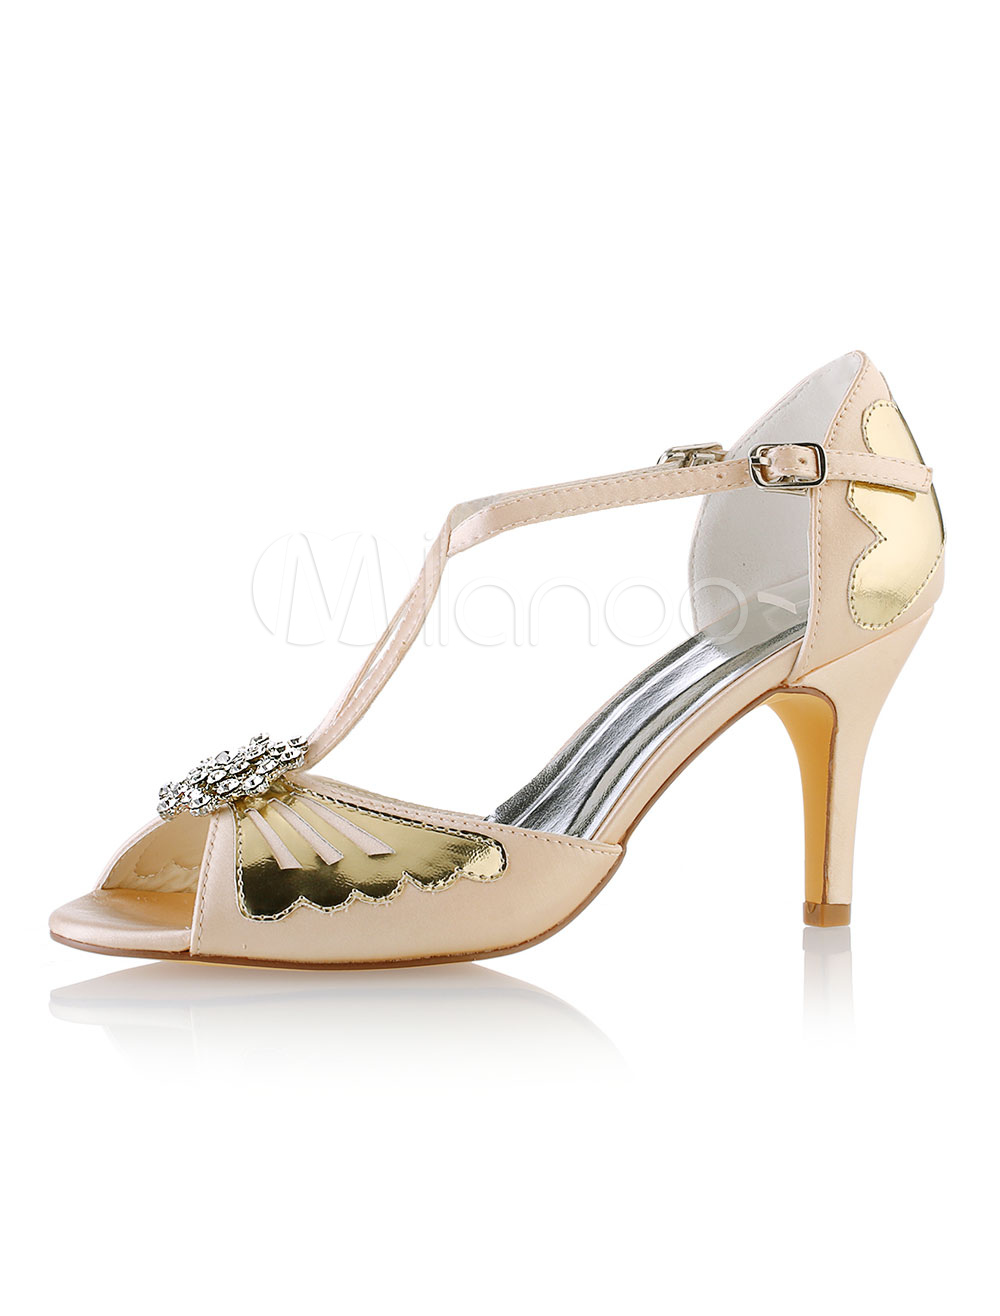 Champagne Wedding Shoes Peep Toe Rhinestones Bridal Shoes Women